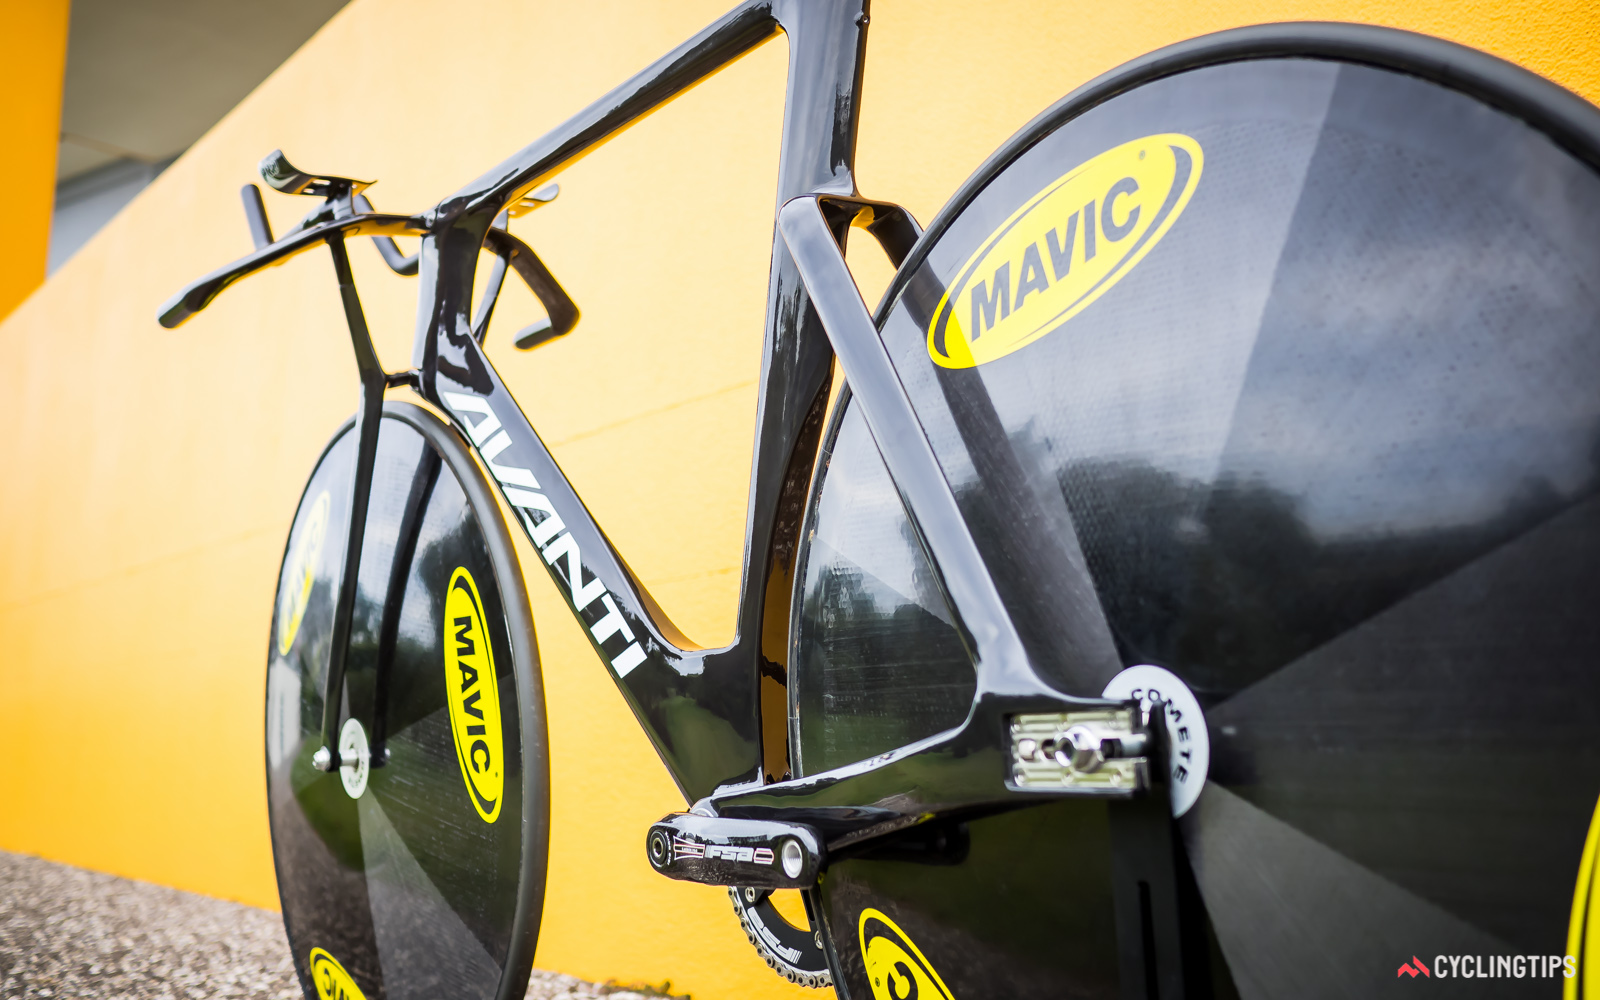 While Cycling New Zealand is keeping Avanti's new sprint bike under wraps, the pursuit bike is ready to be shared.